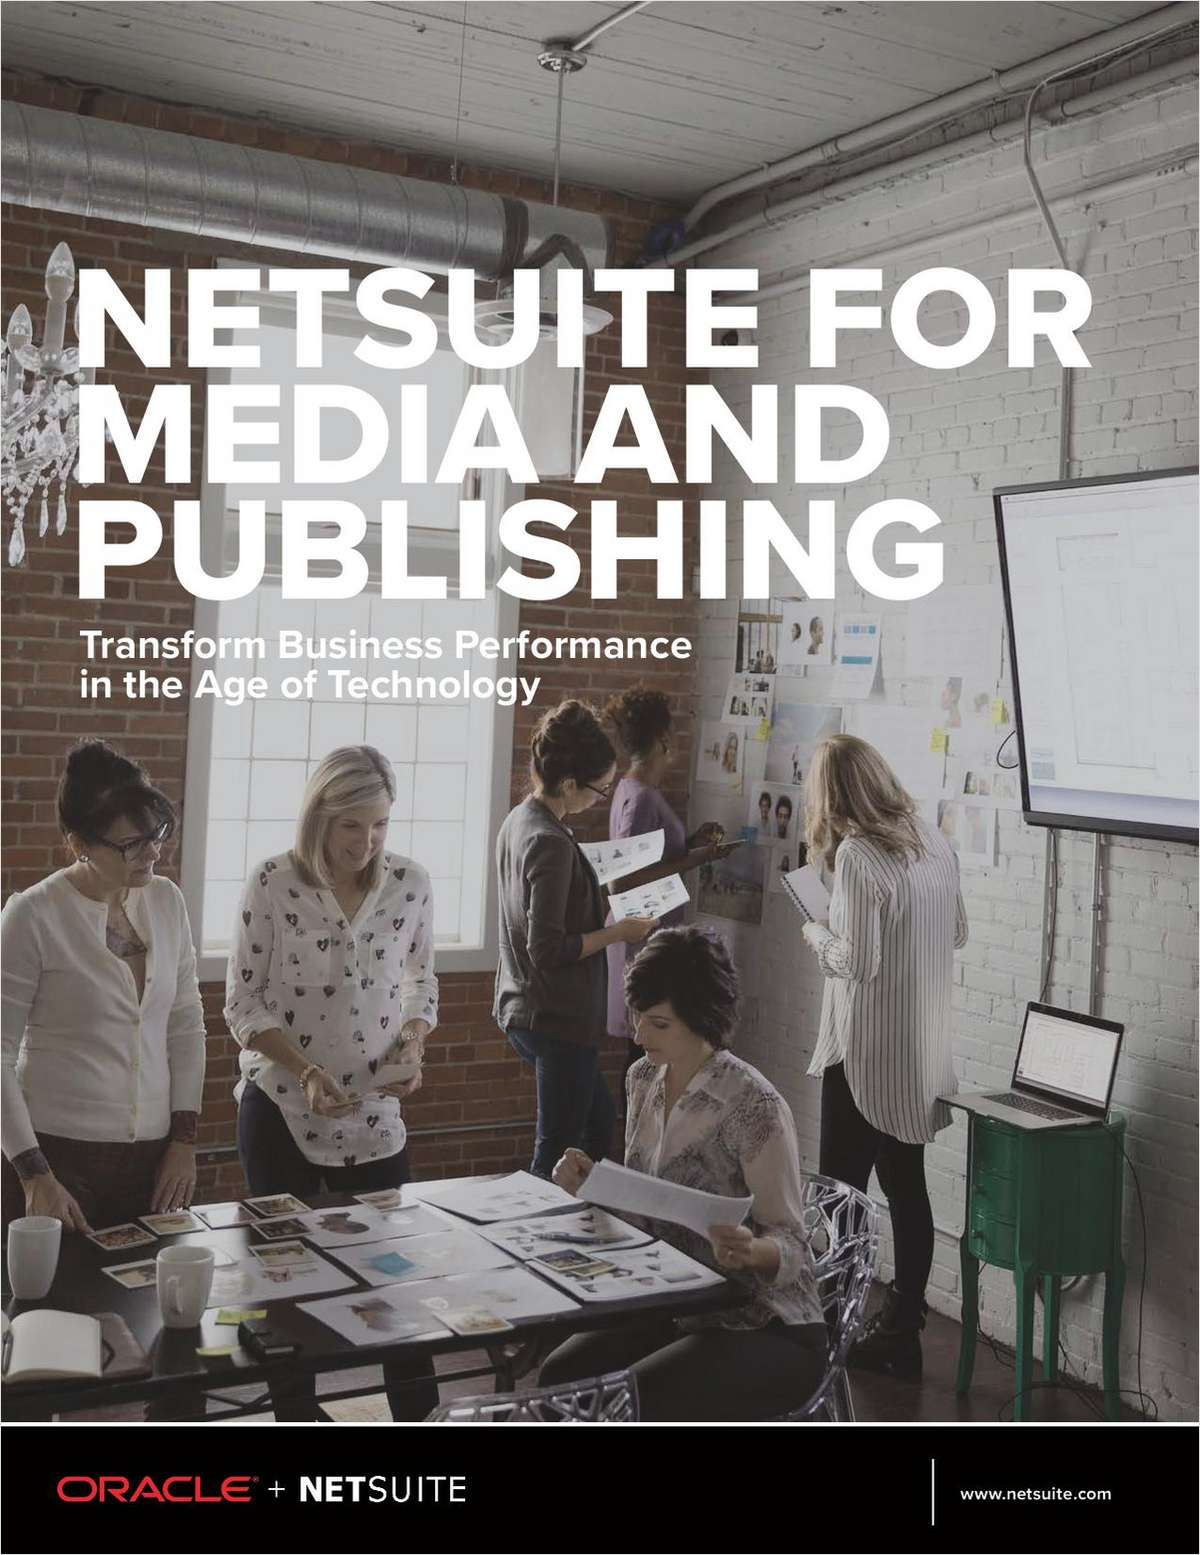 NetSuite for Media and Publishing: Transform Business Performance in the Age of Technology